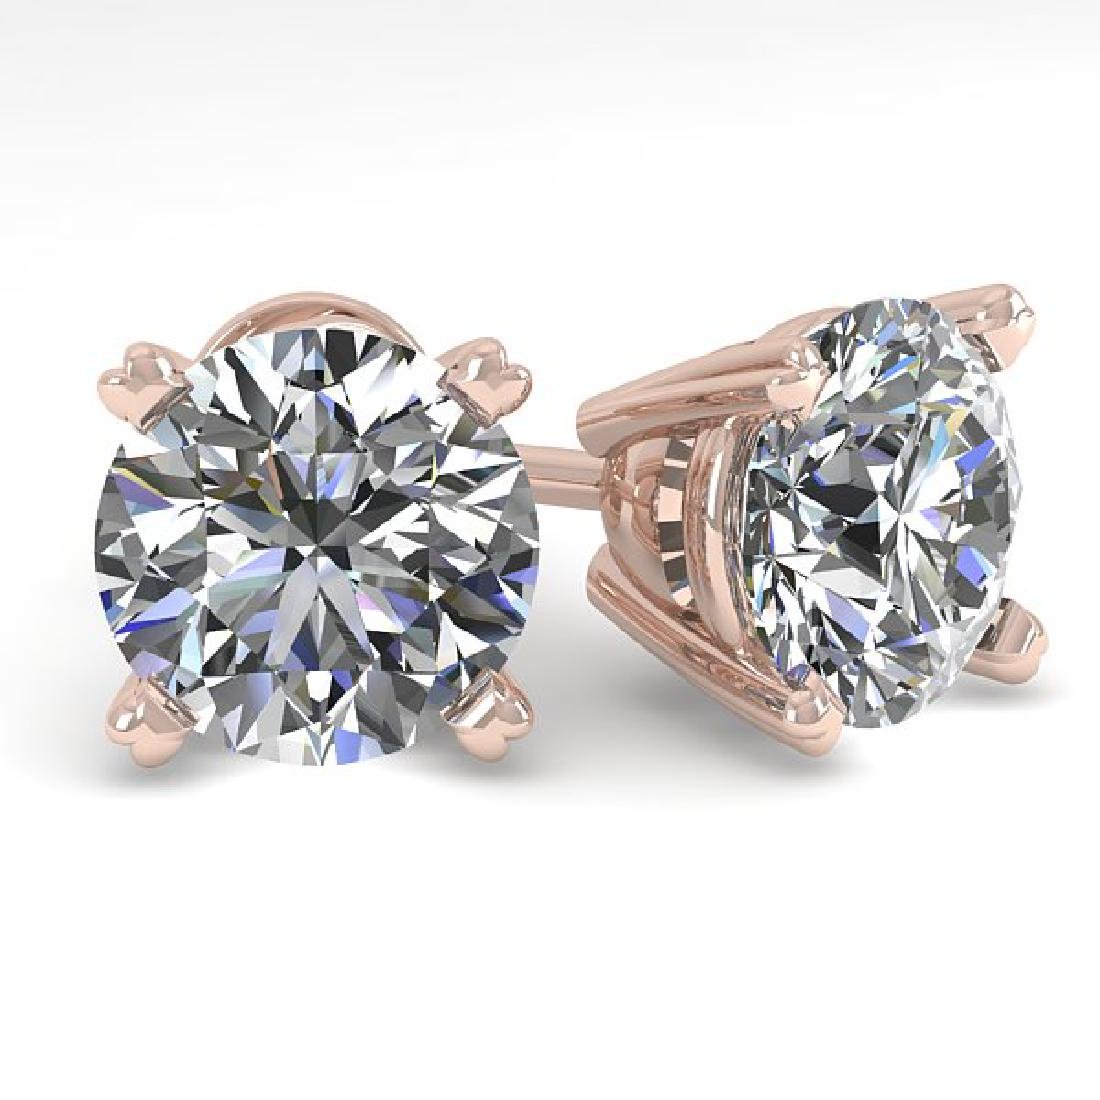 2.53 CTW Certified VS/SI Diamond Stud Earrings 14K Rose